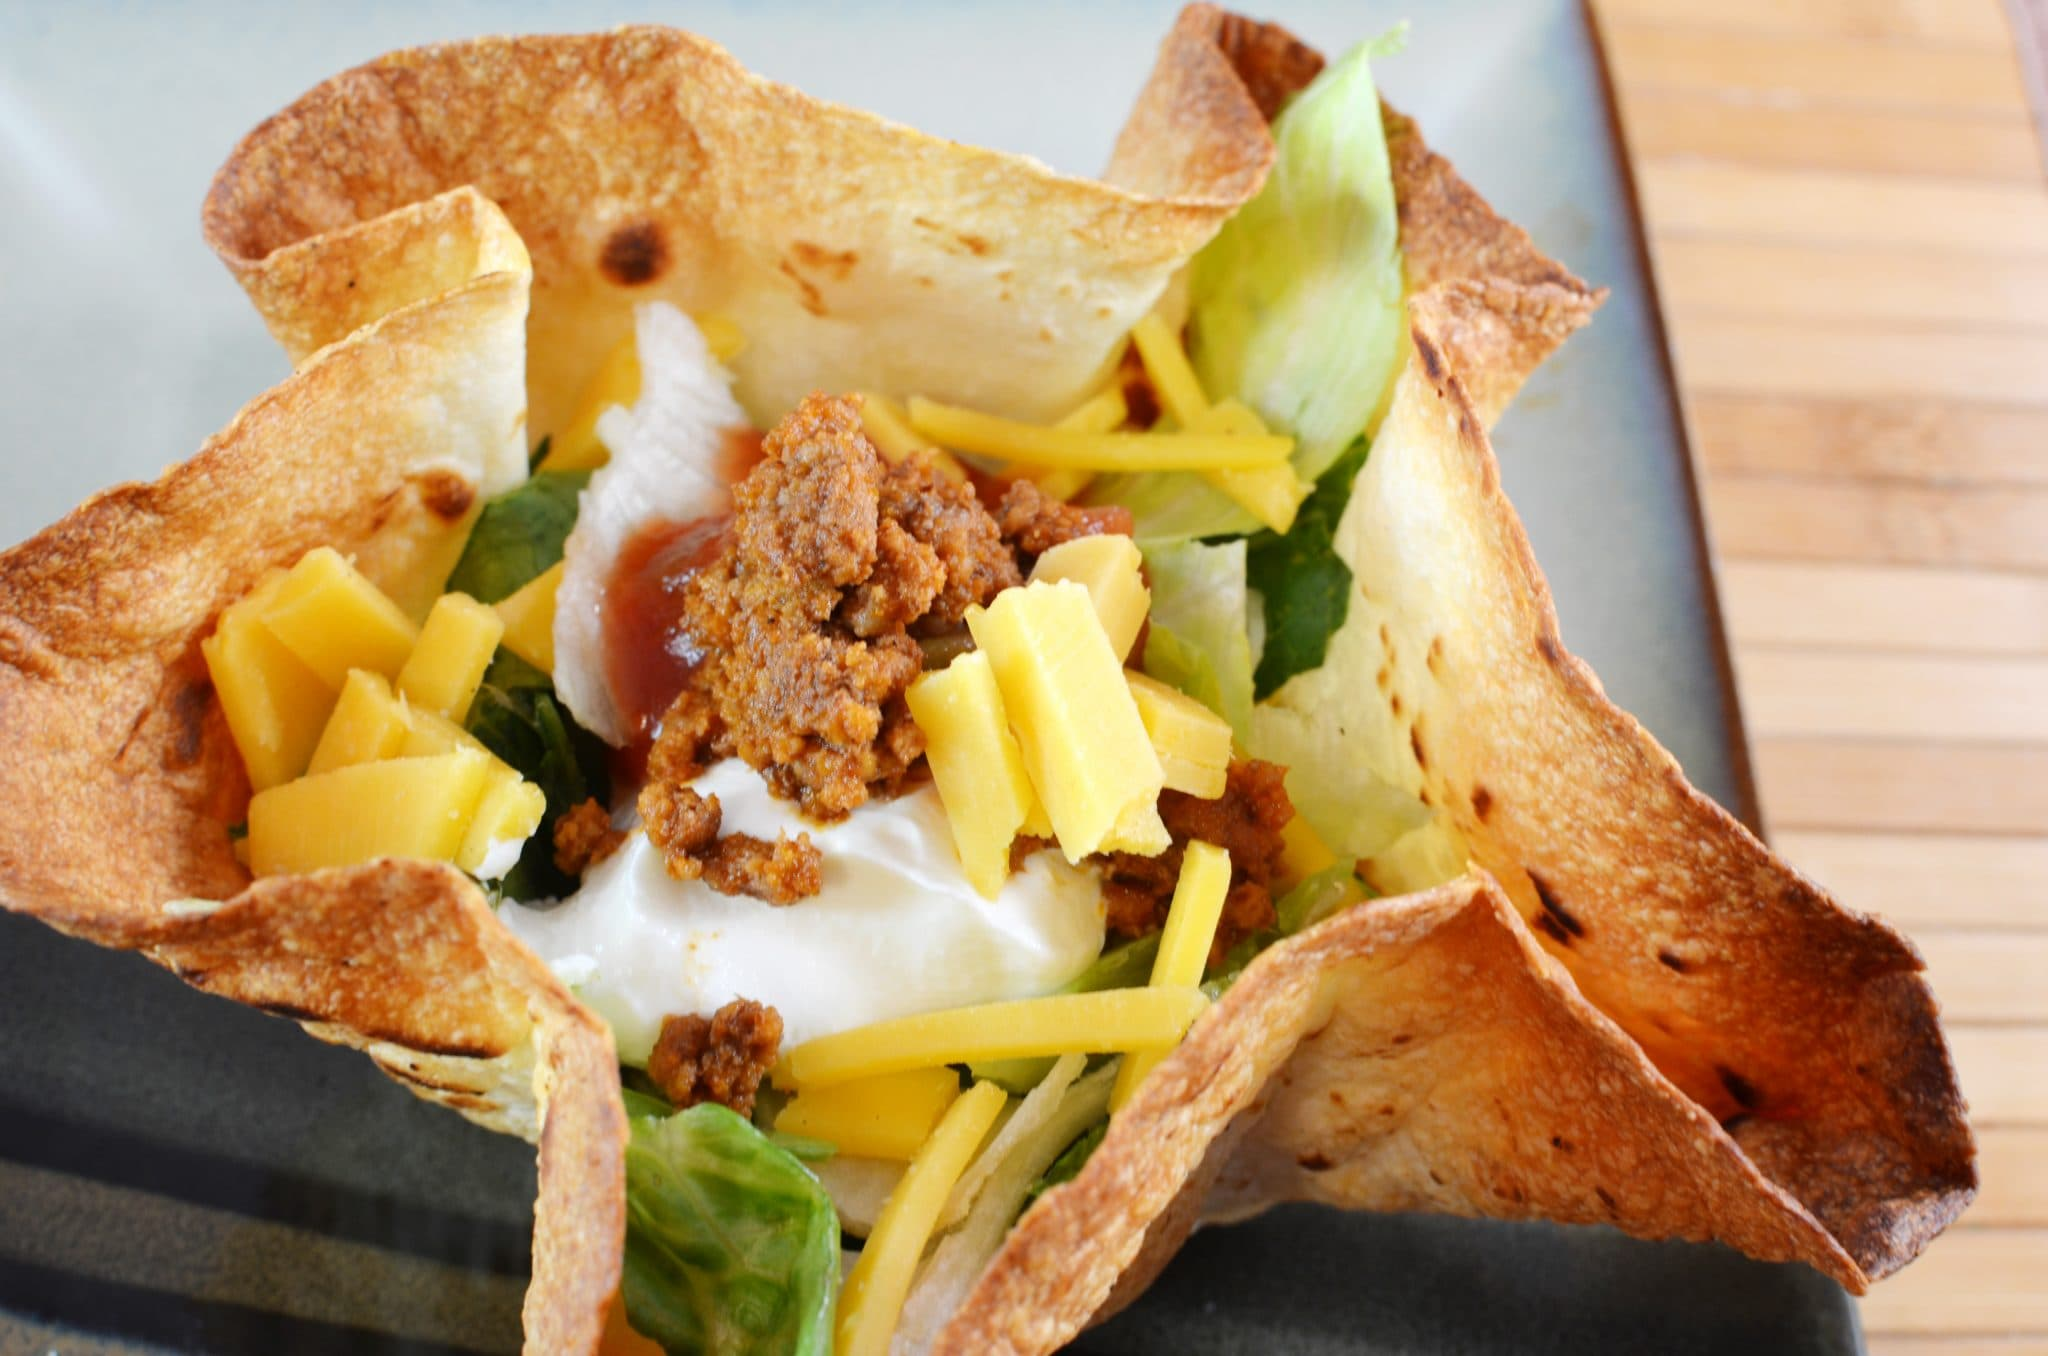 How To: Homemade Taco Bowls